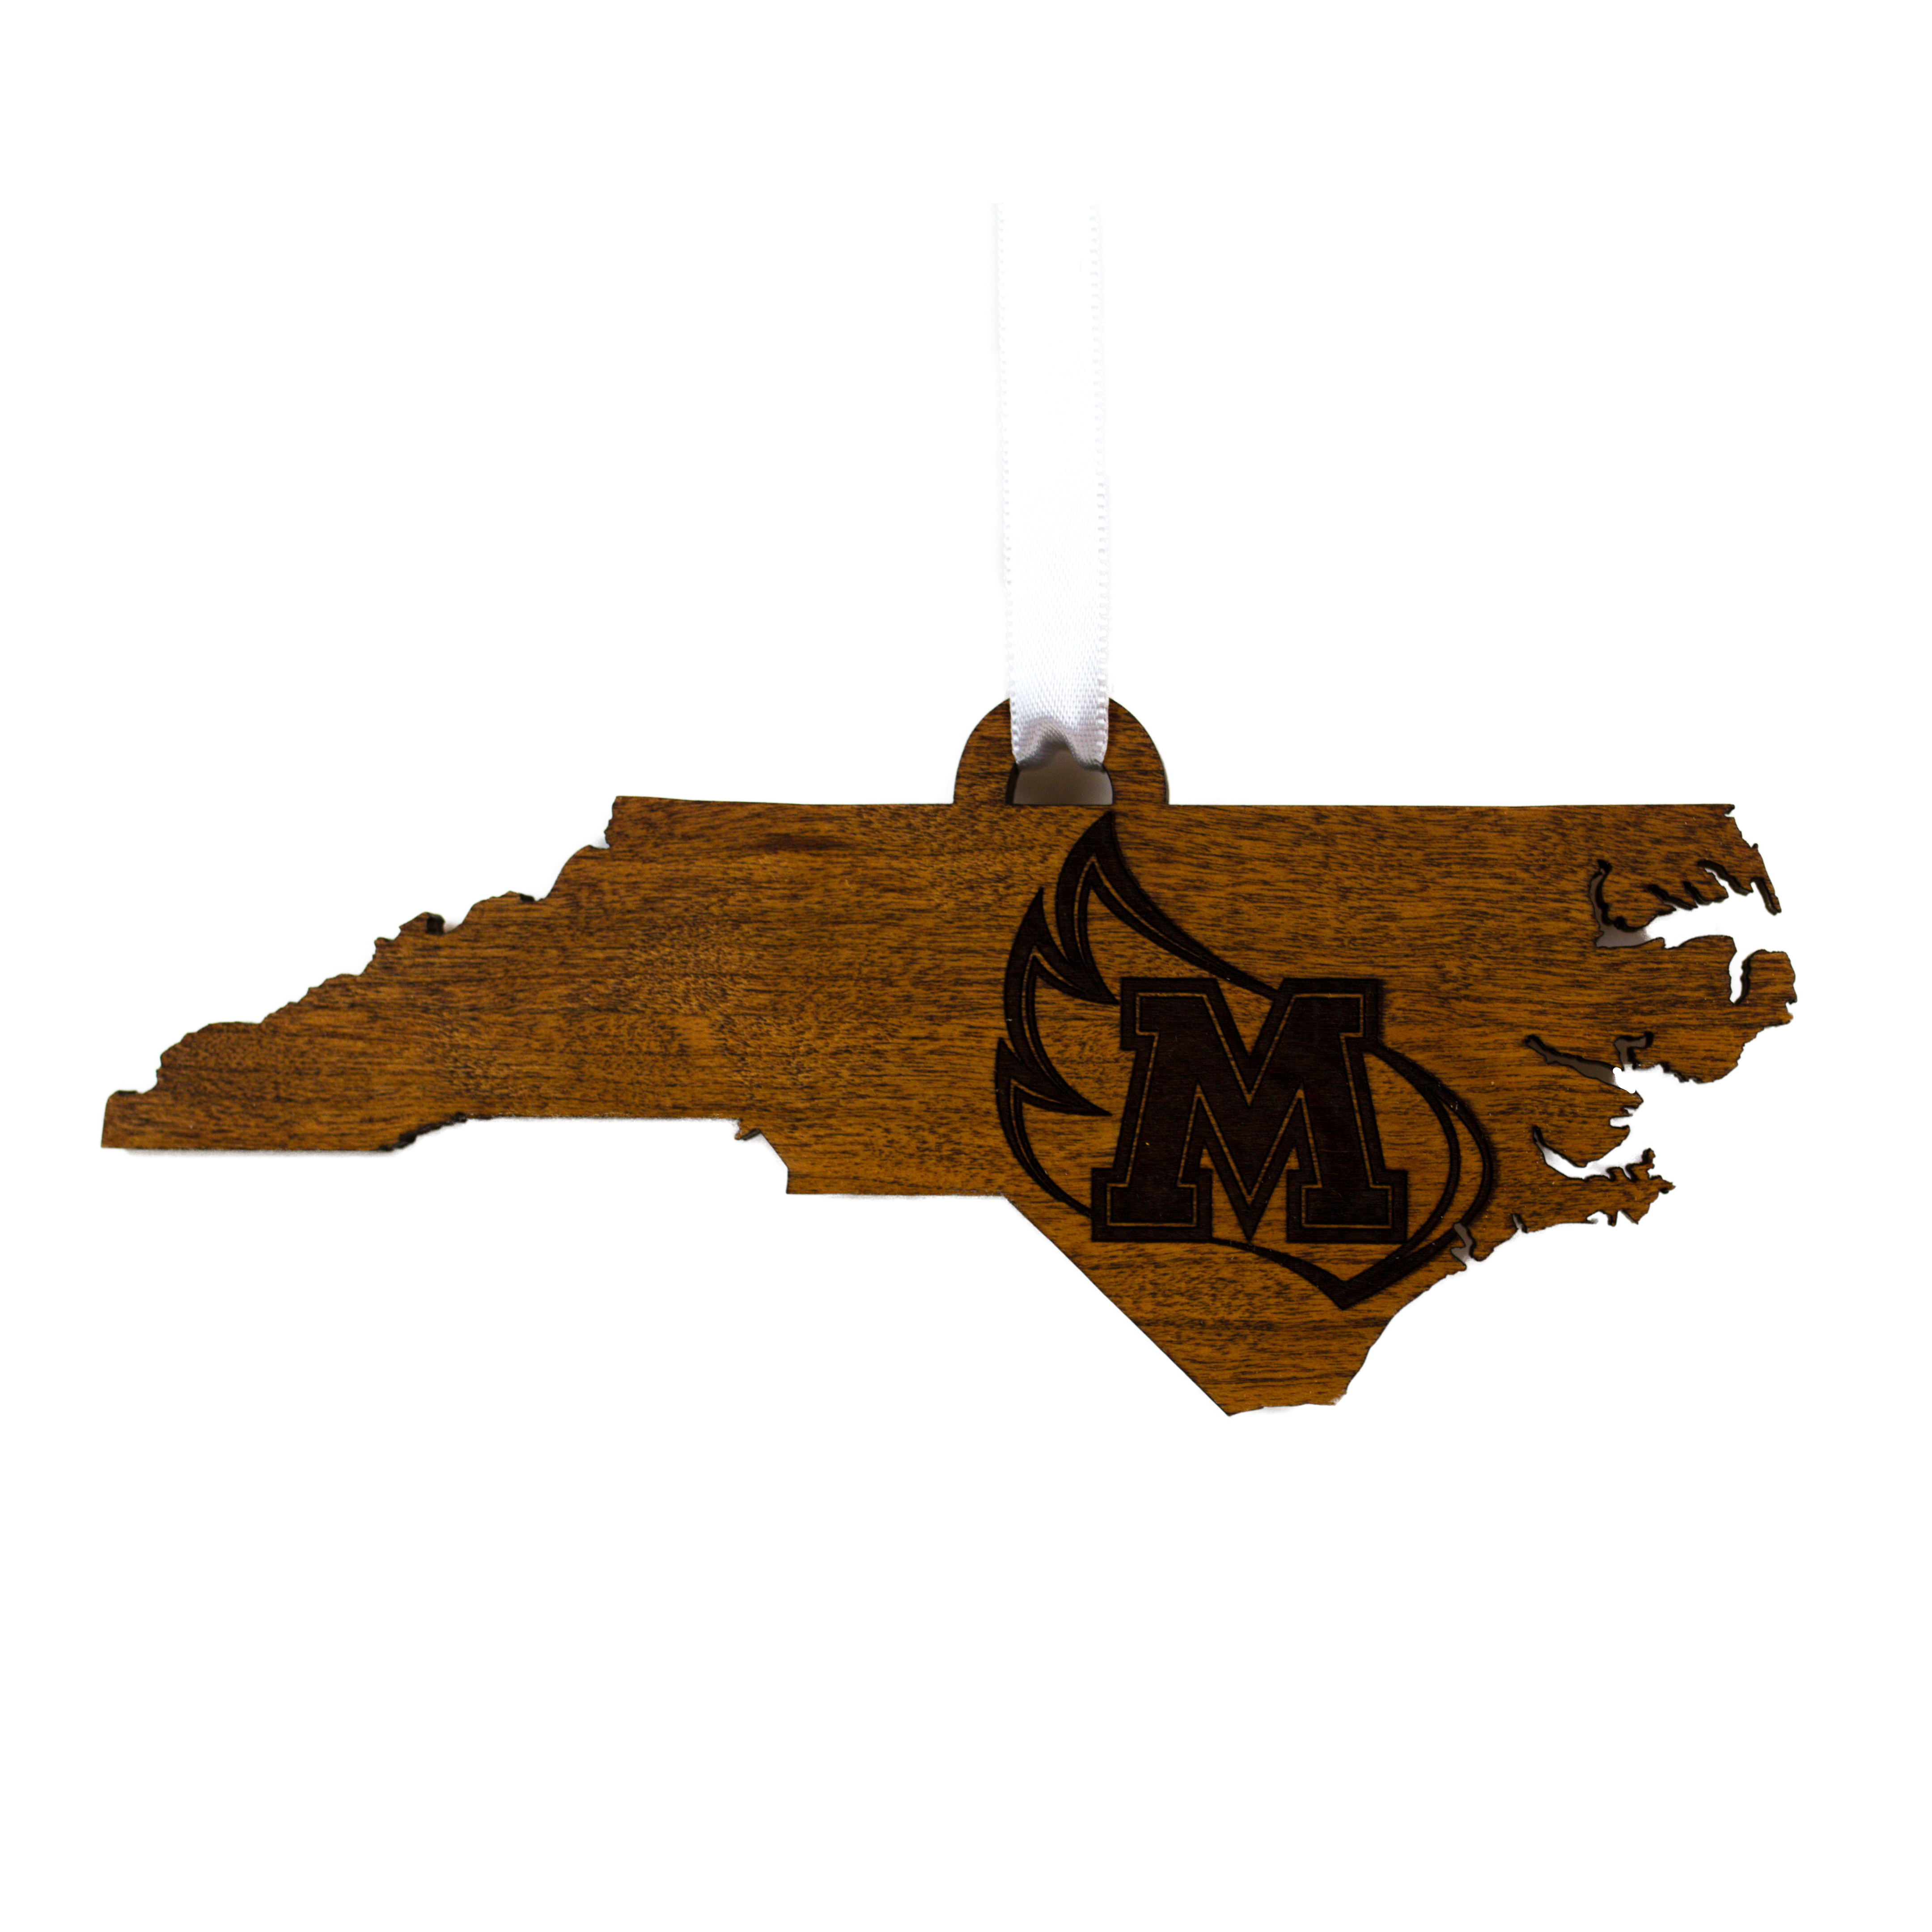 Alternative Image for the State Map Wood Ornament LazerEdge product